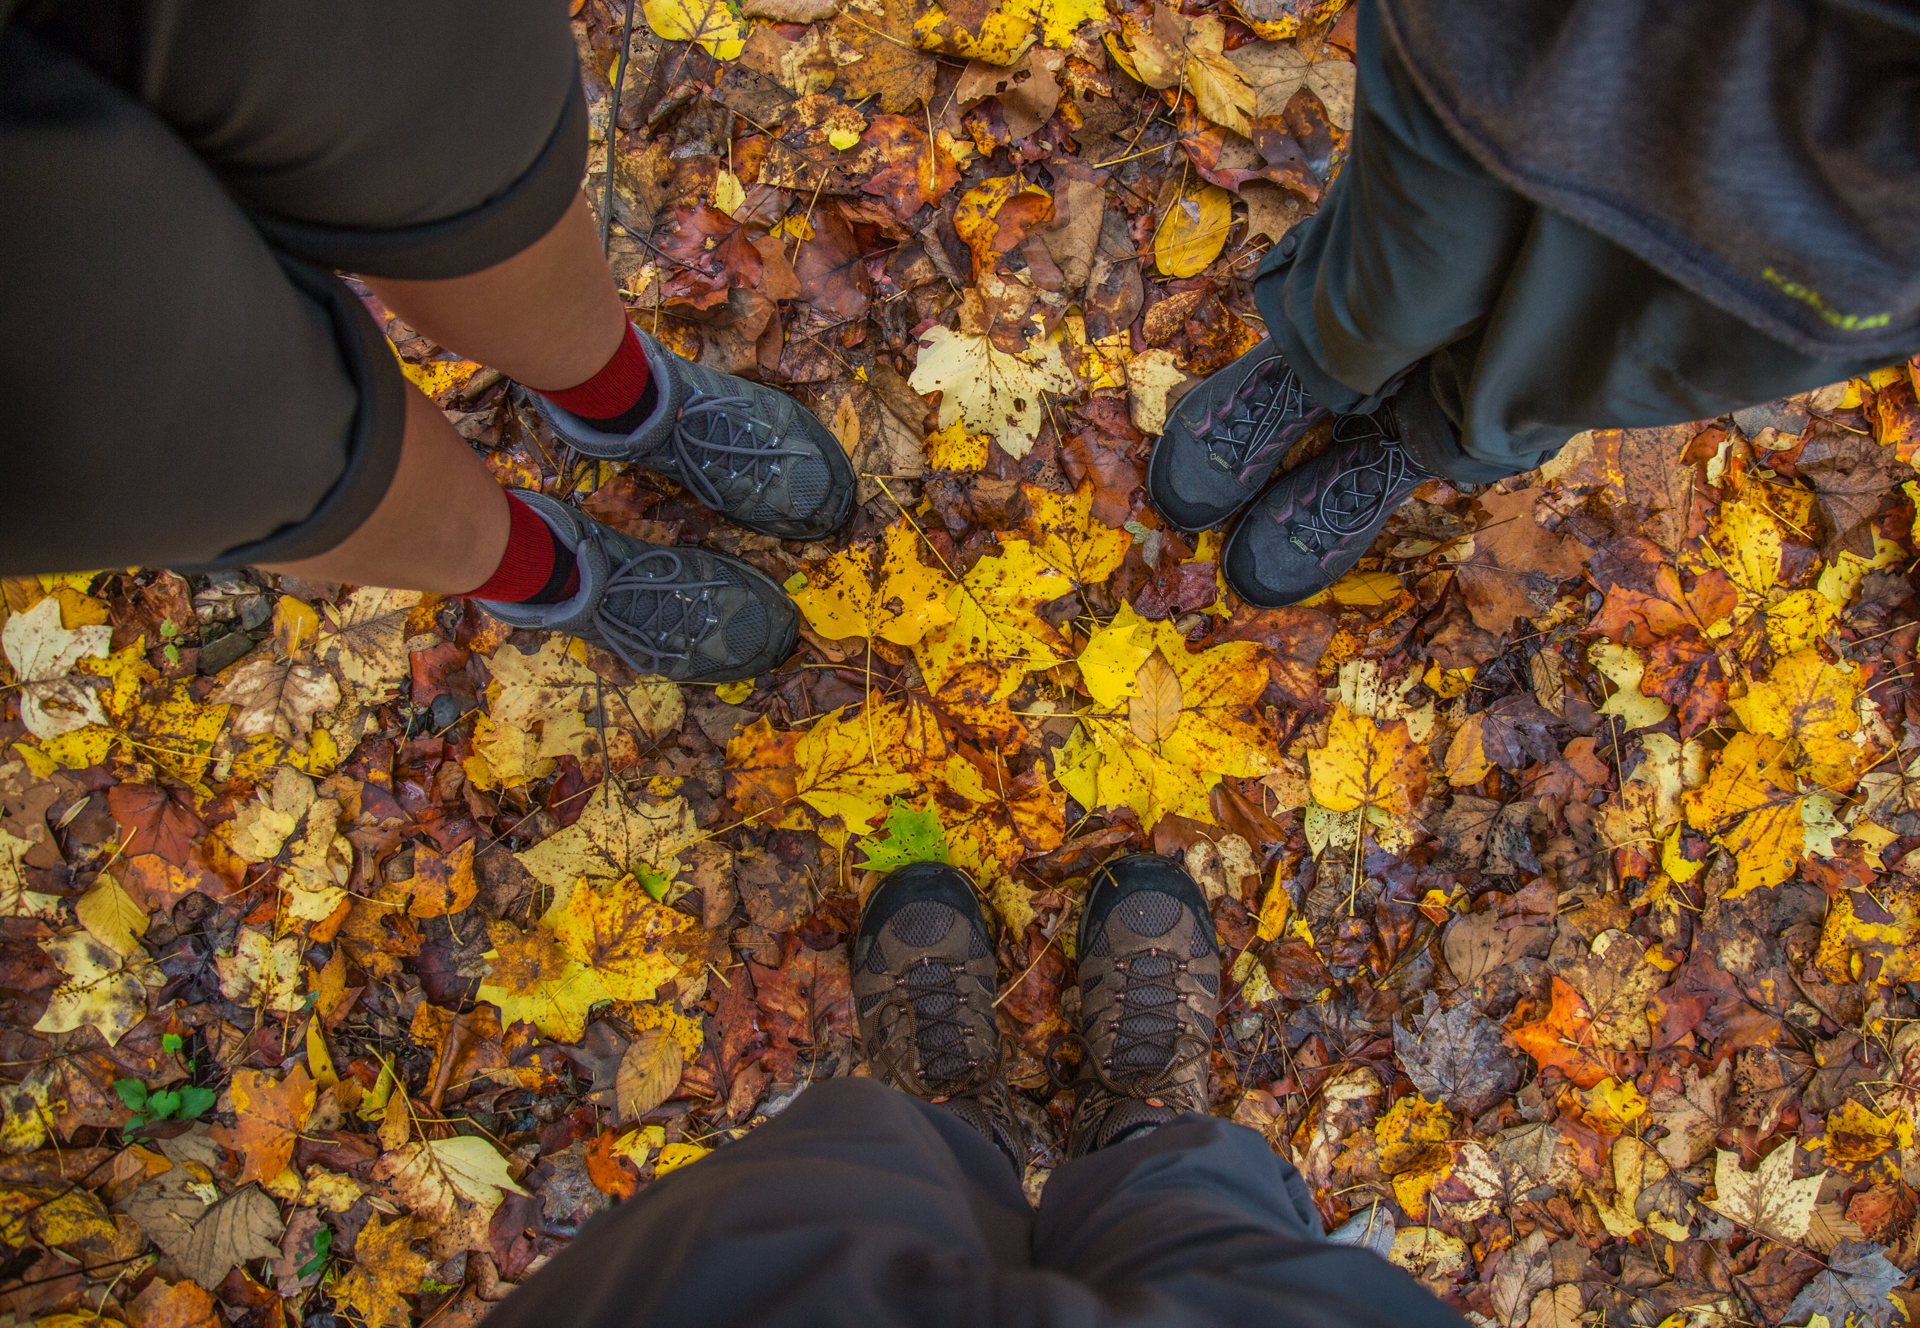 View of 3 people's feet standing on many fallen leaves.